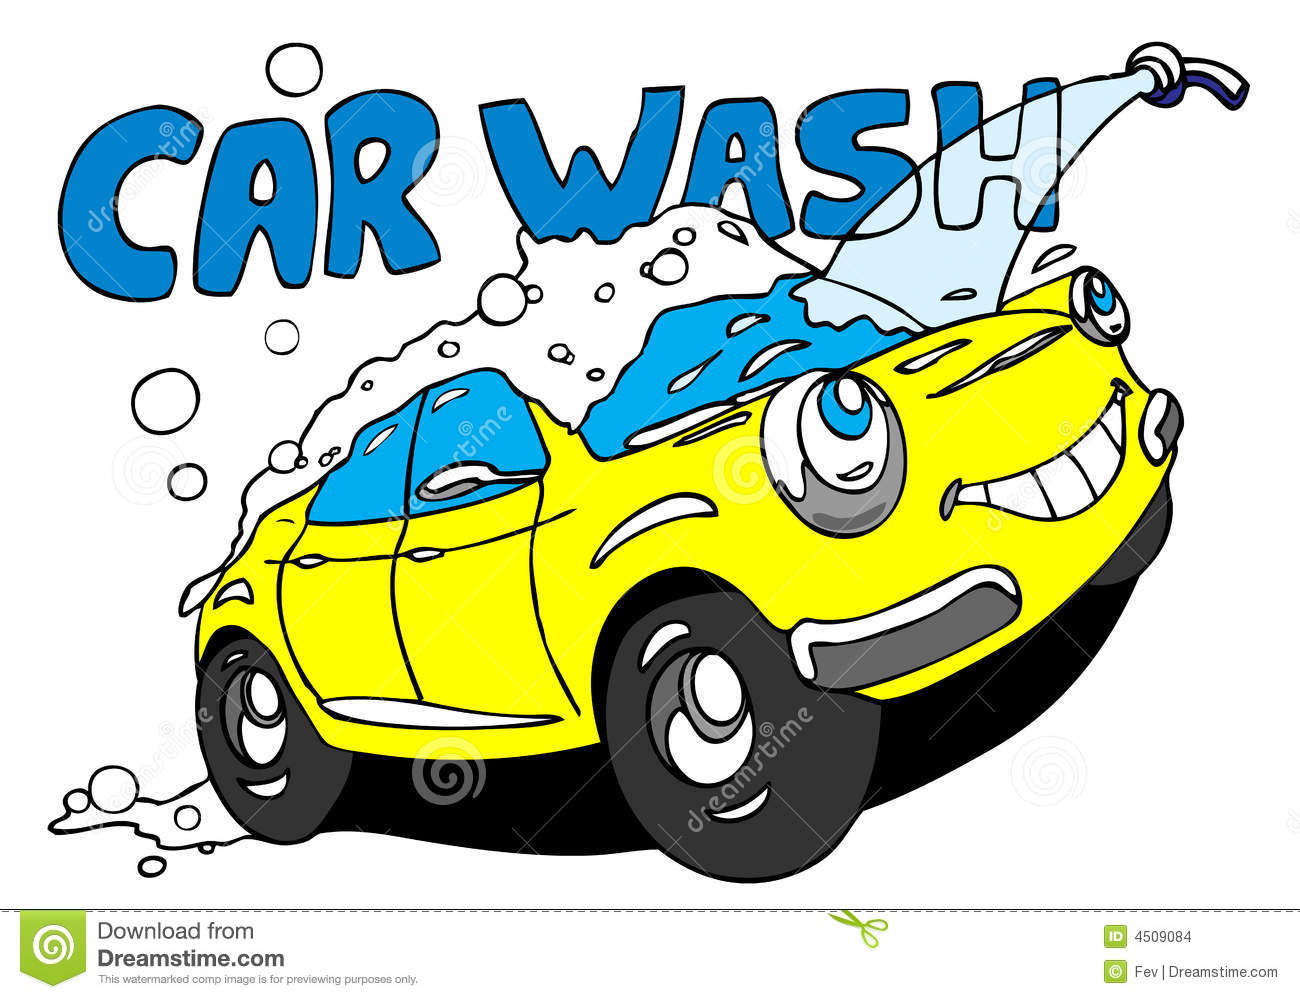 Car in car wash clipart graphic freeuse Car hand wash clipart - ClipartFest graphic freeuse